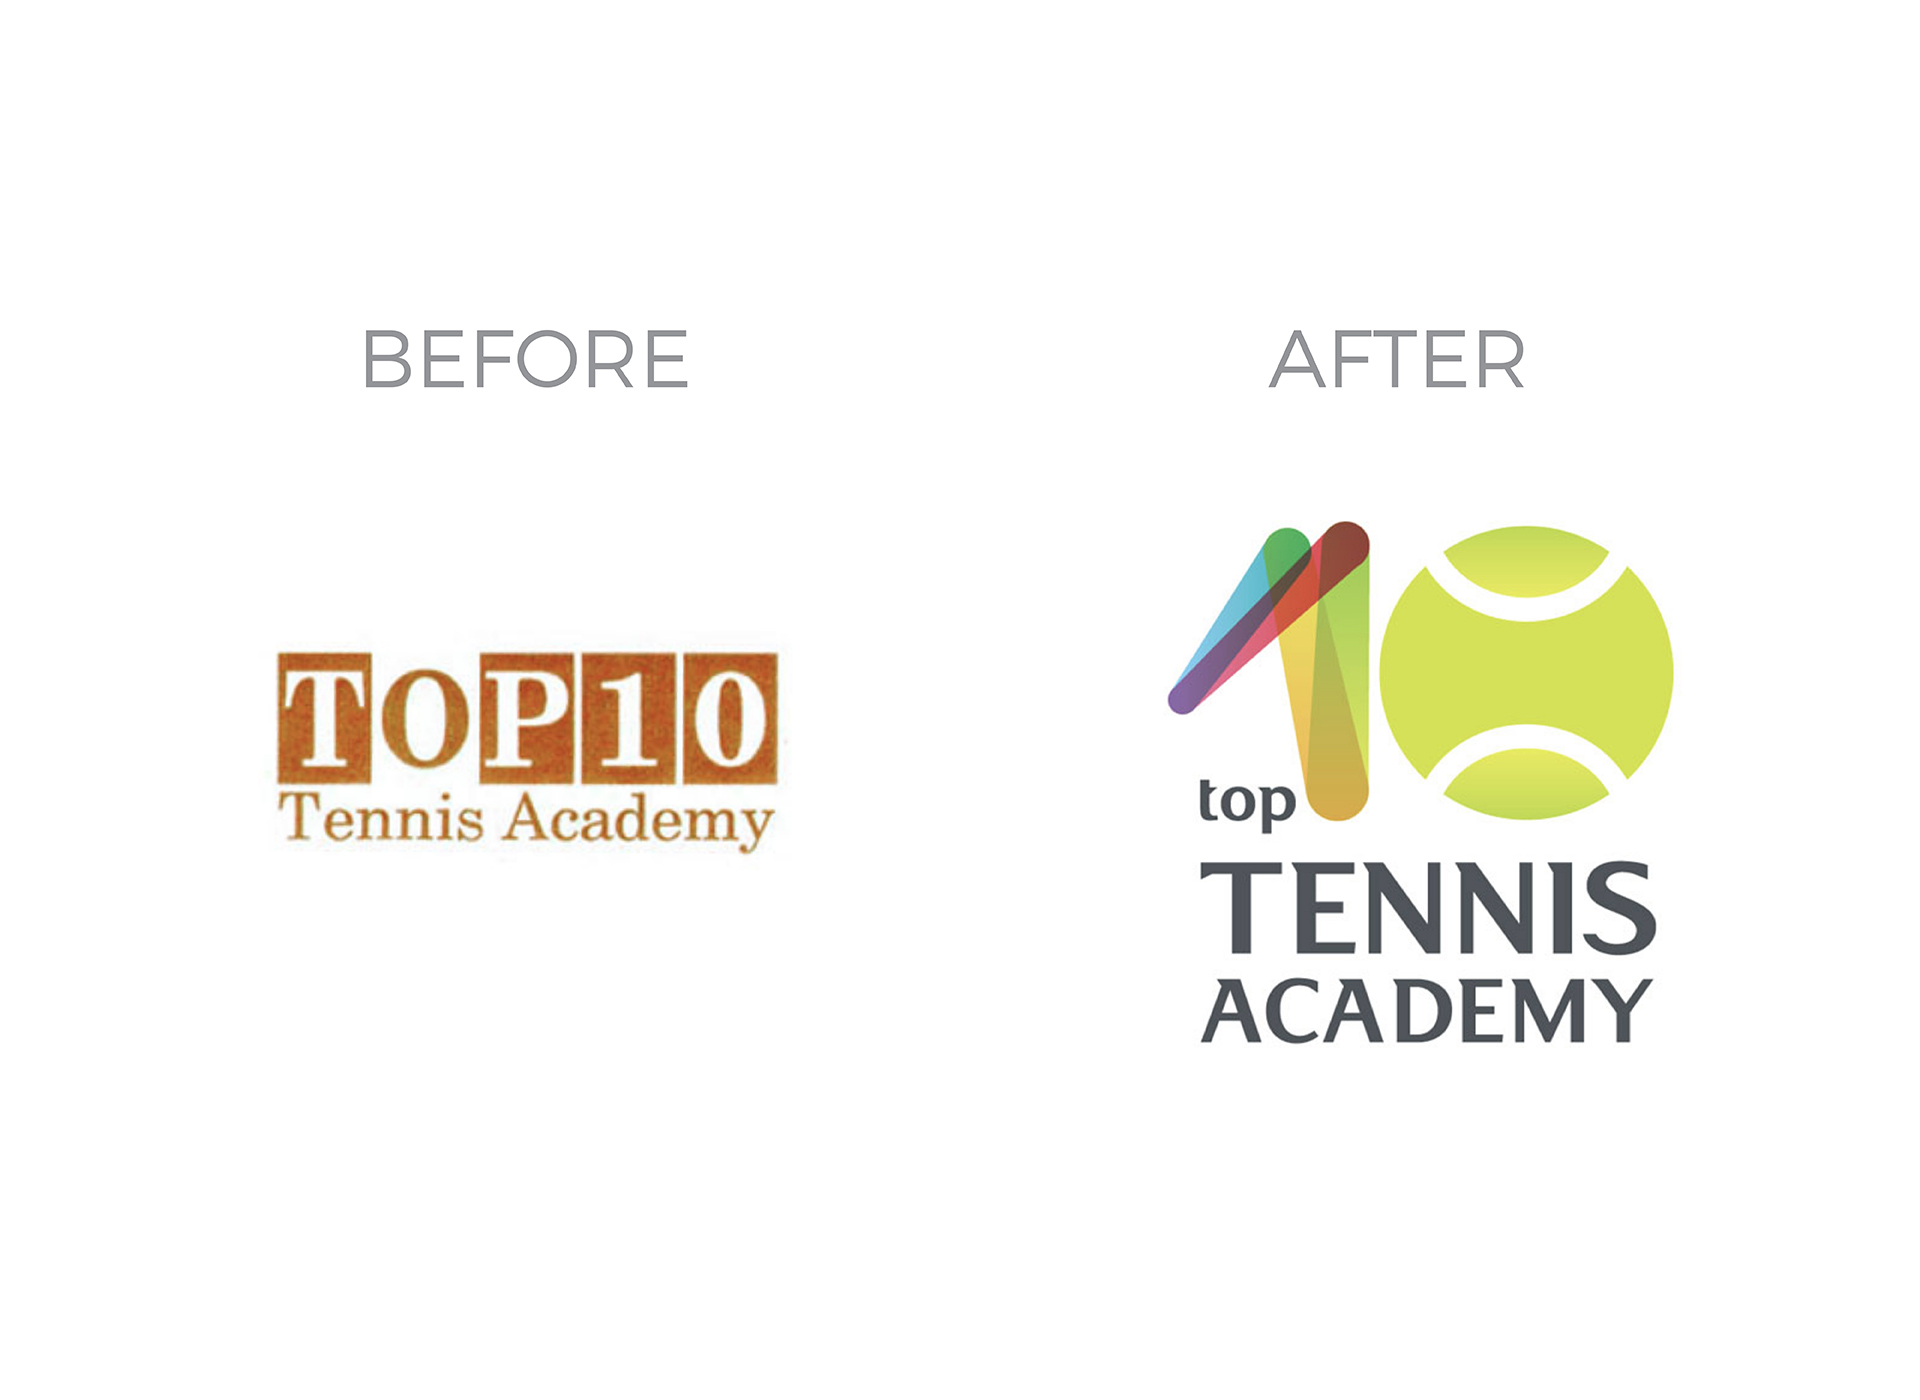 top 10 tennis portfolio before and after rebranding